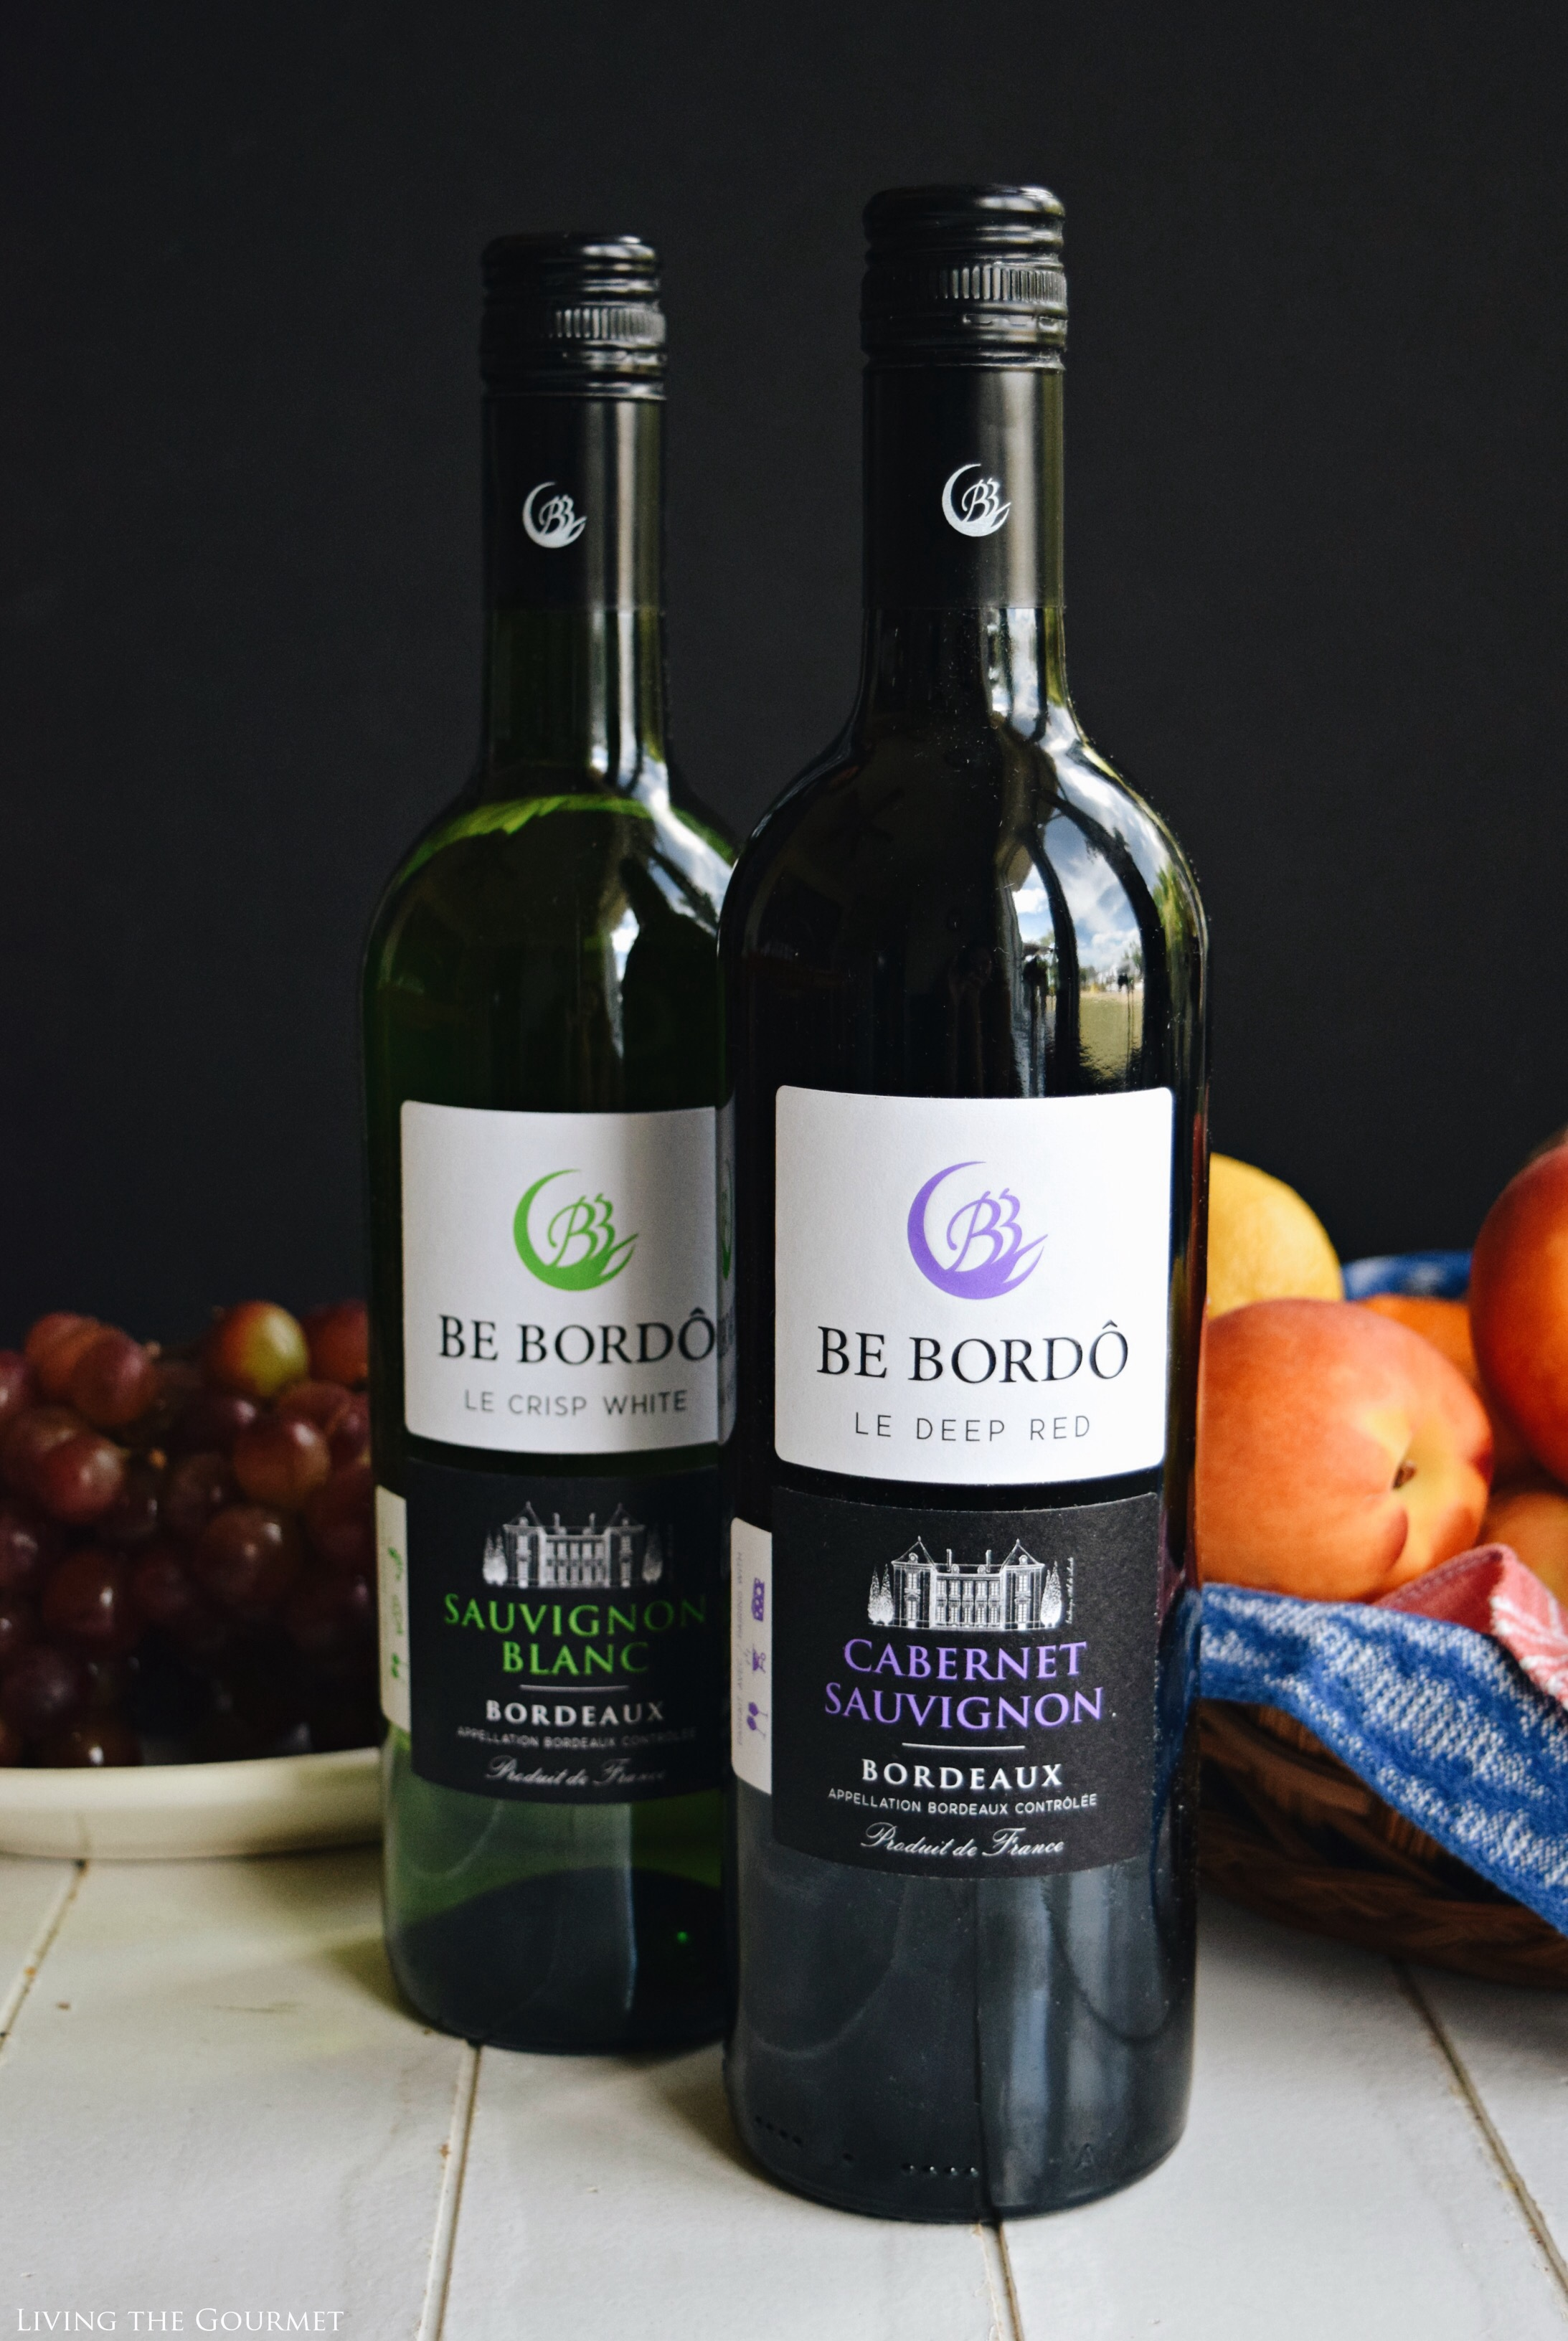 Living the Gourmet: Be Bordo Wines